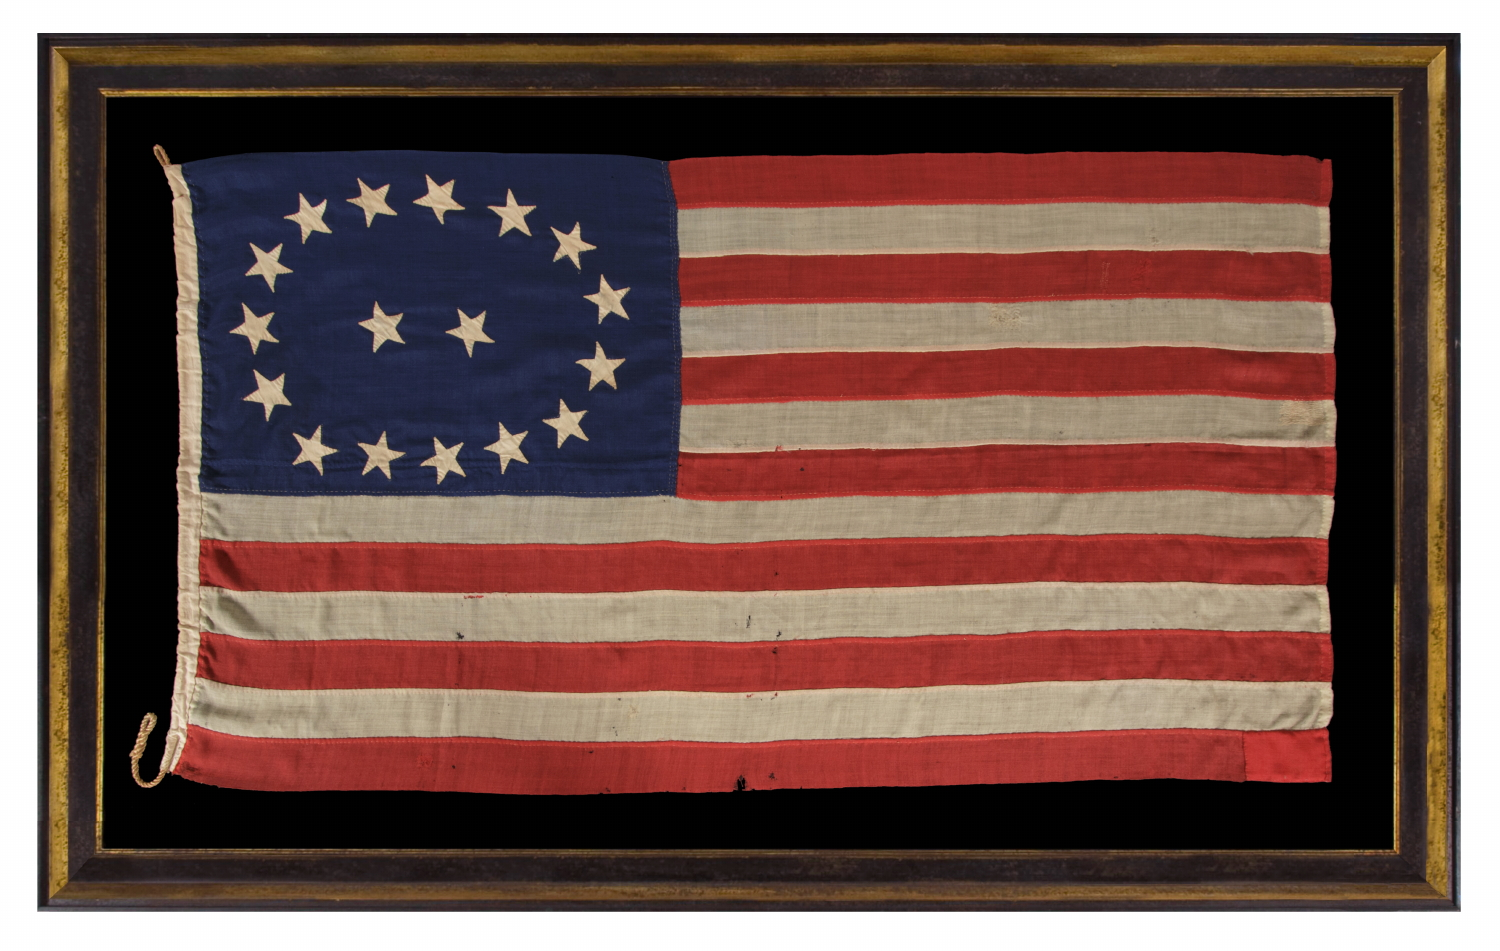 6705fef9e78 Jeff Bridgman Antique Flags and Painted Furniture - 17 STARS IN AN ...